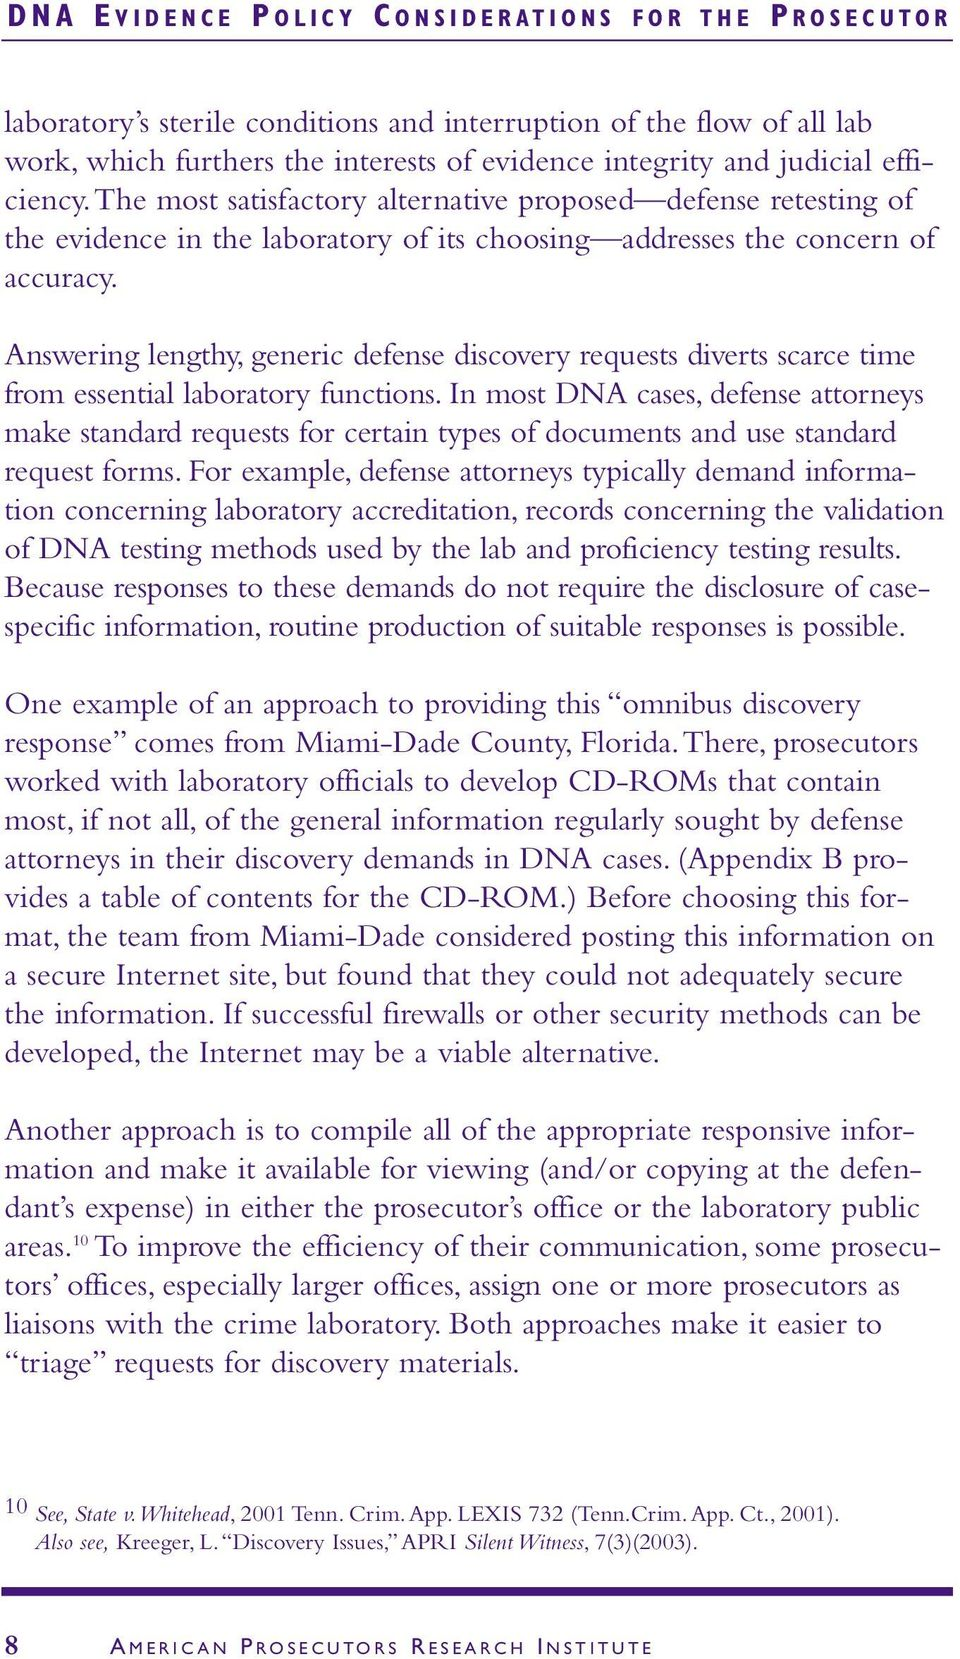 Answering lengthy, generic defense discovery requests diverts scarce time from essential laboratory functions.